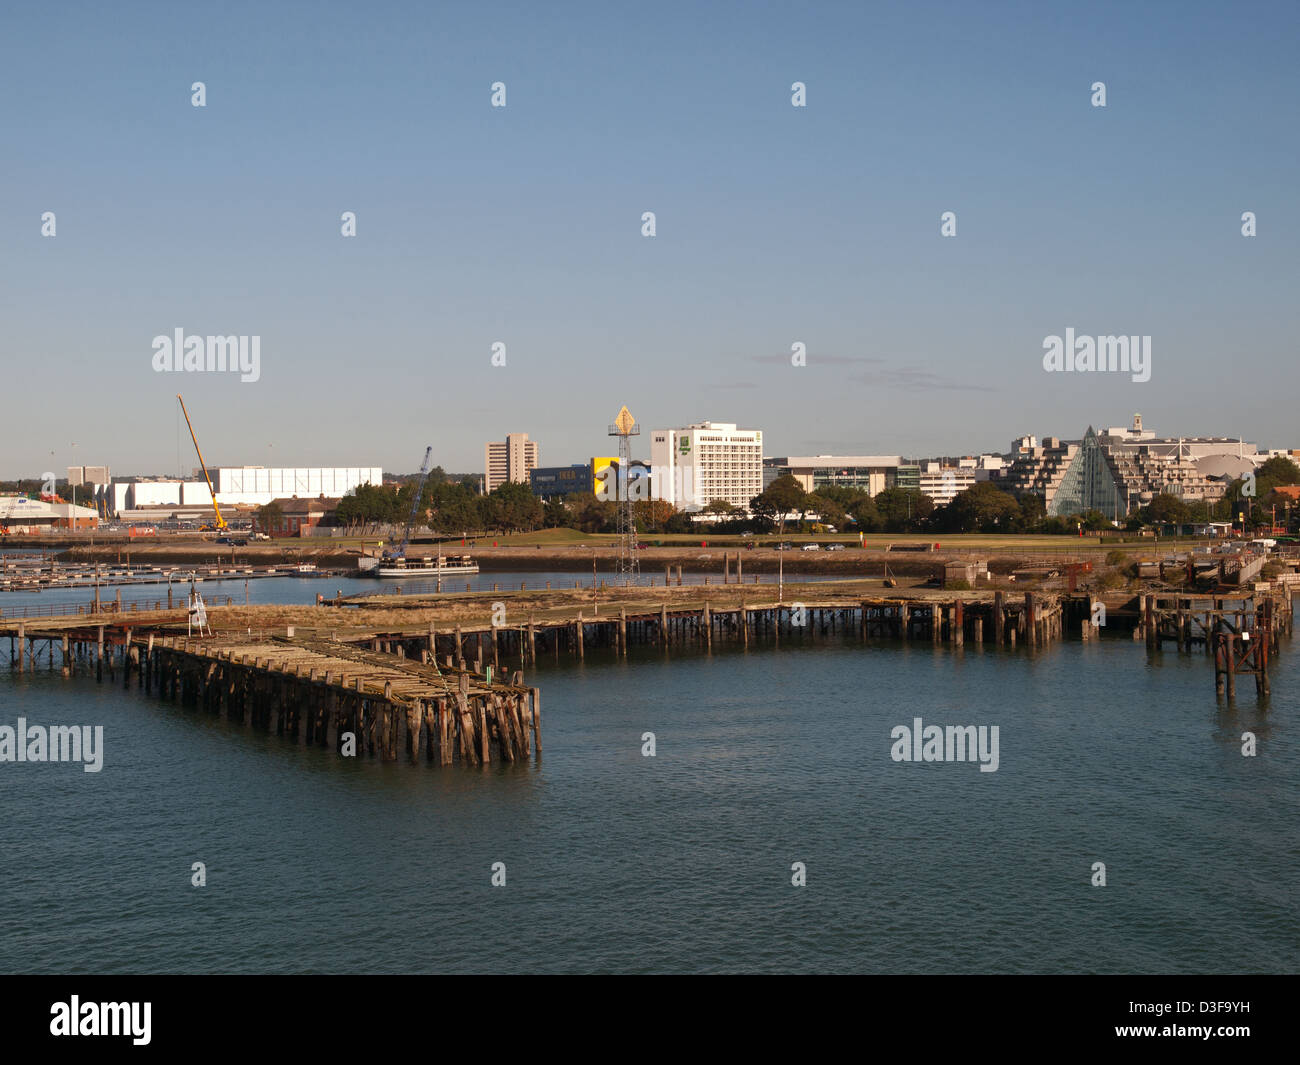 Remains of the Royal Pier in Southampton Port Hampshire England UK - Stock Image